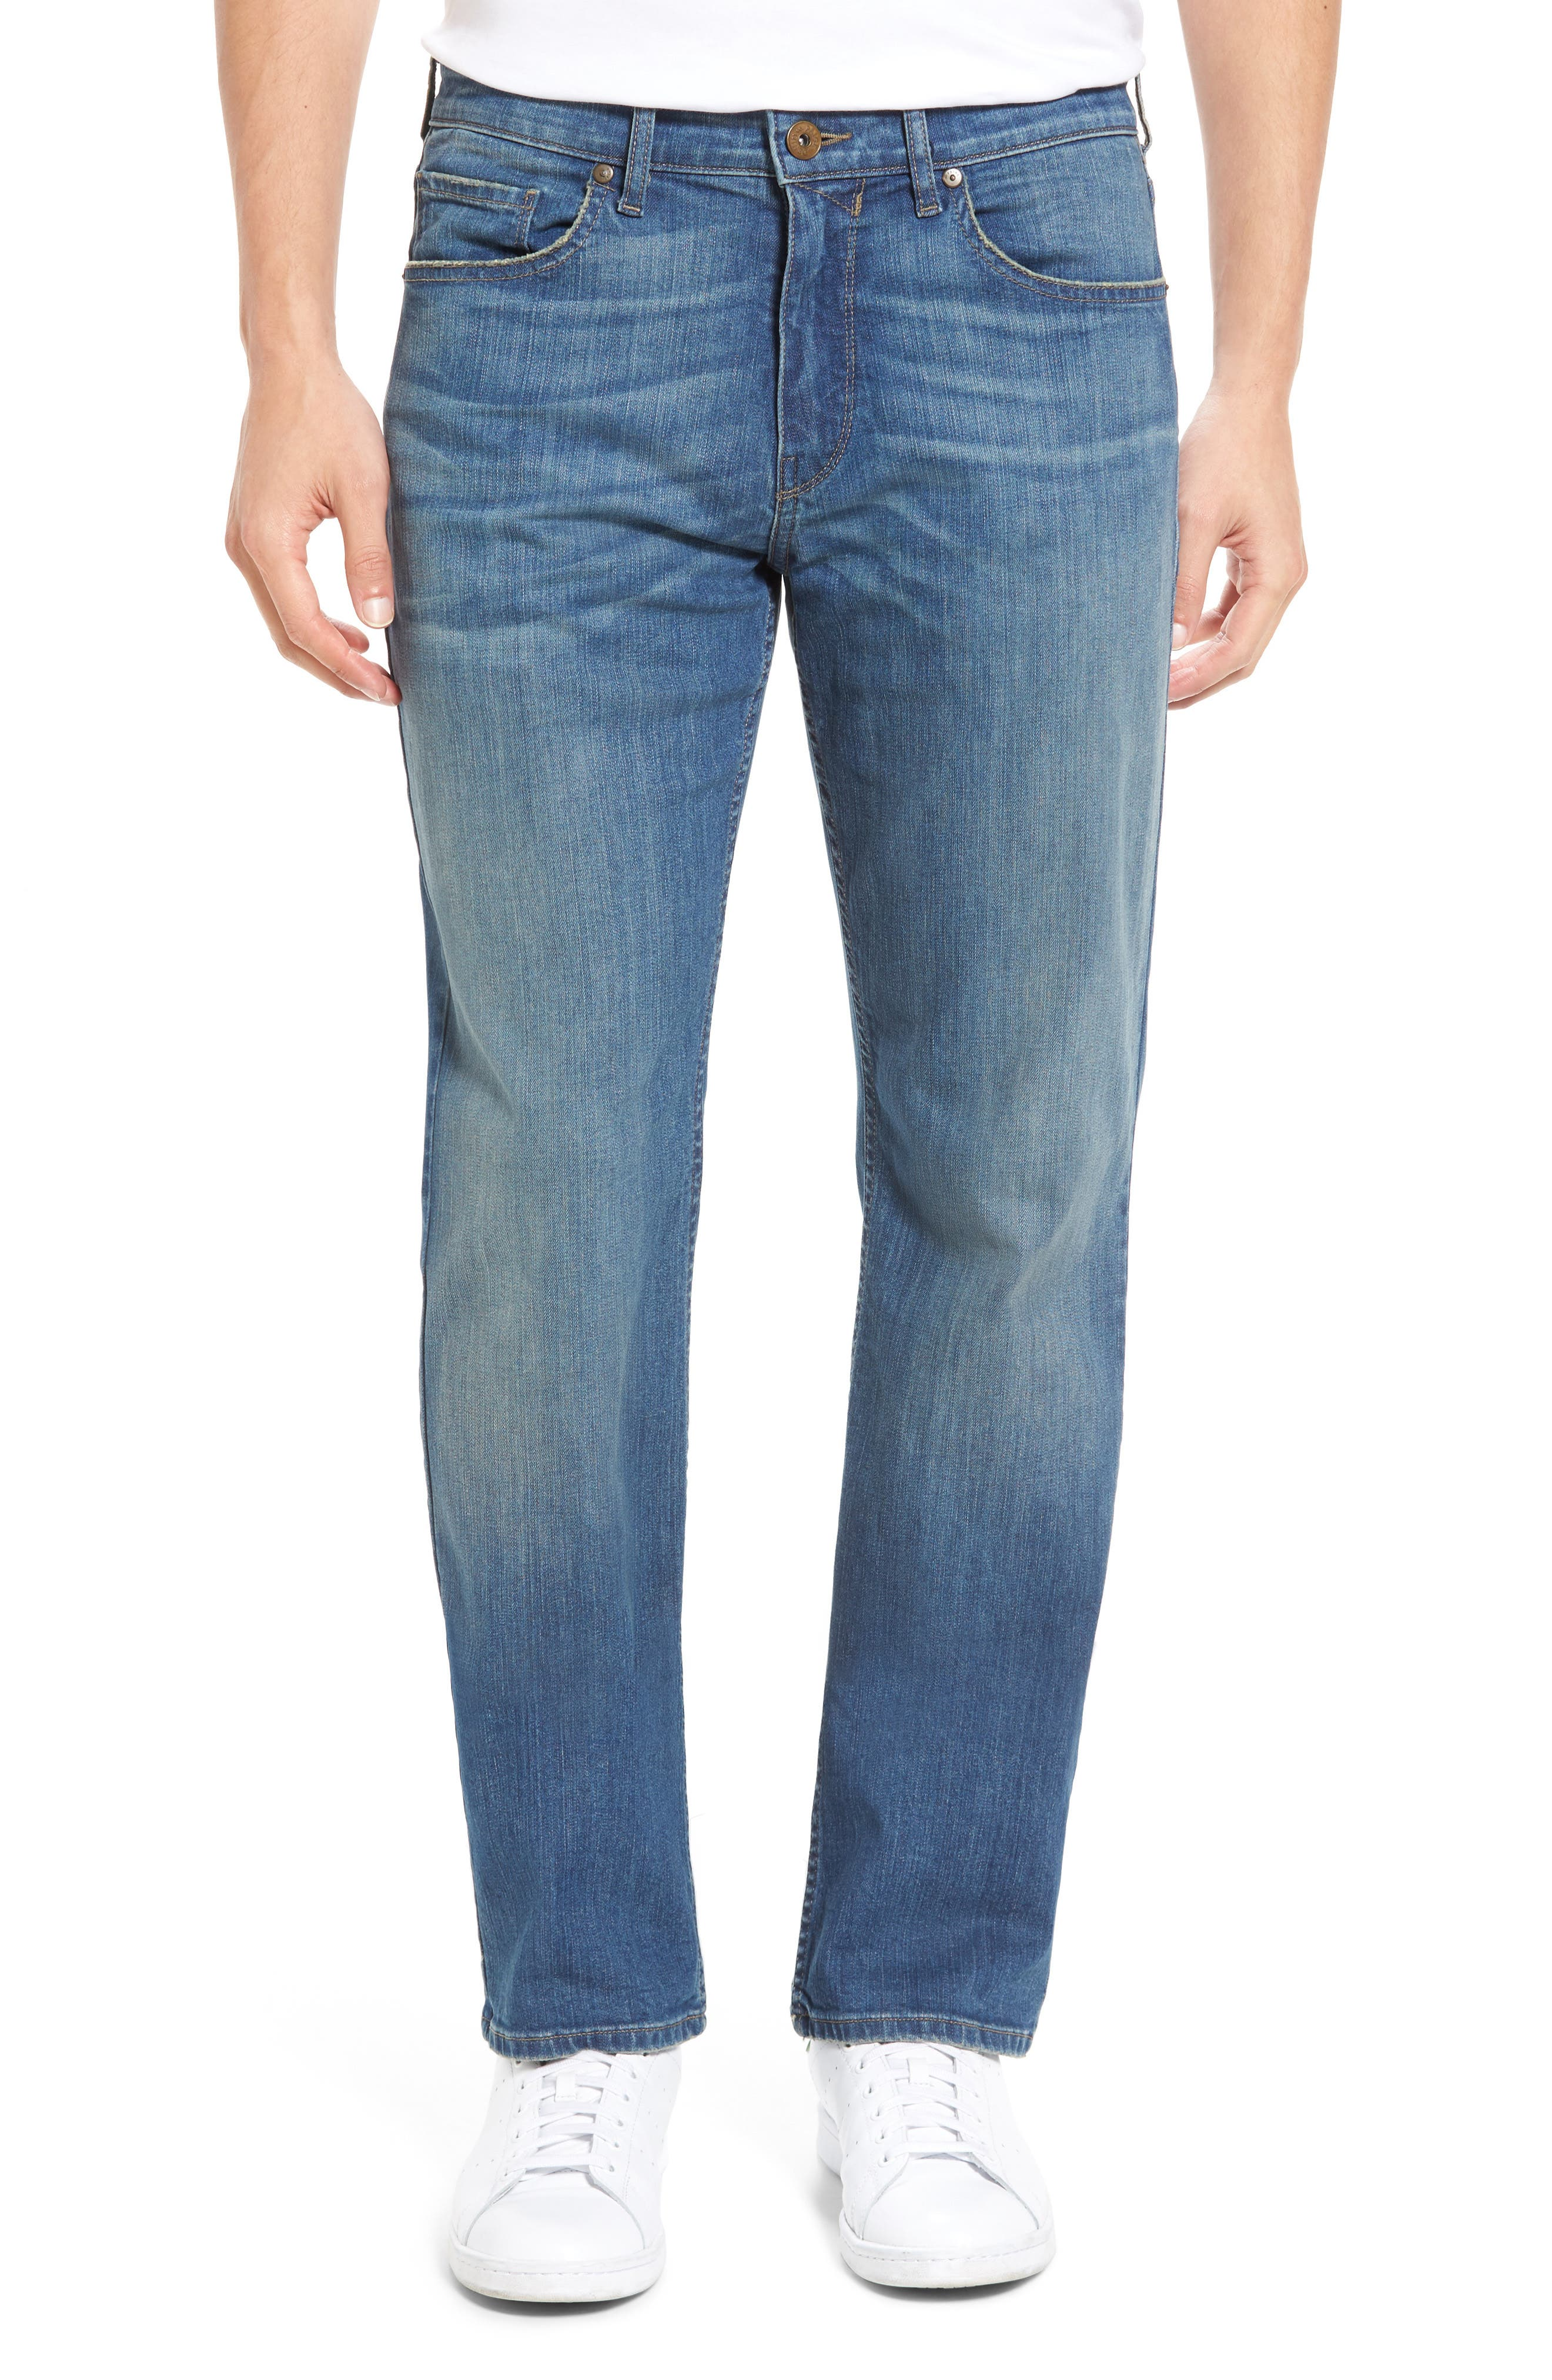 Legacy - Doheny Relaxed Fit Jeans,                         Main,                         color, 400